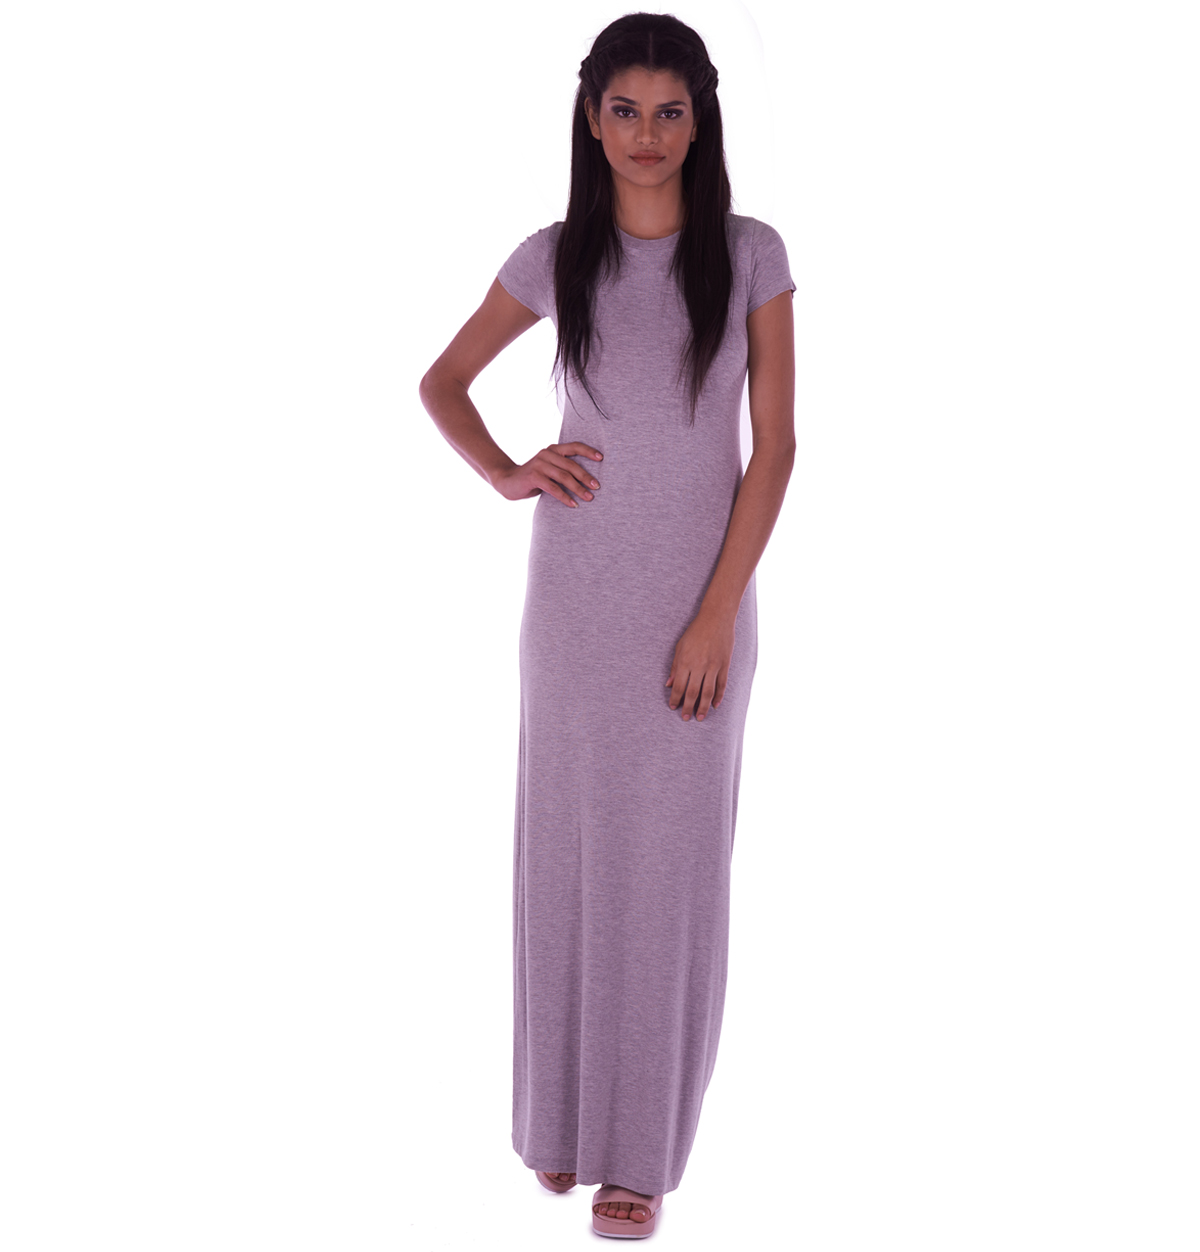 S3__LONG_DRESS_GREY_FRONT2.jpg